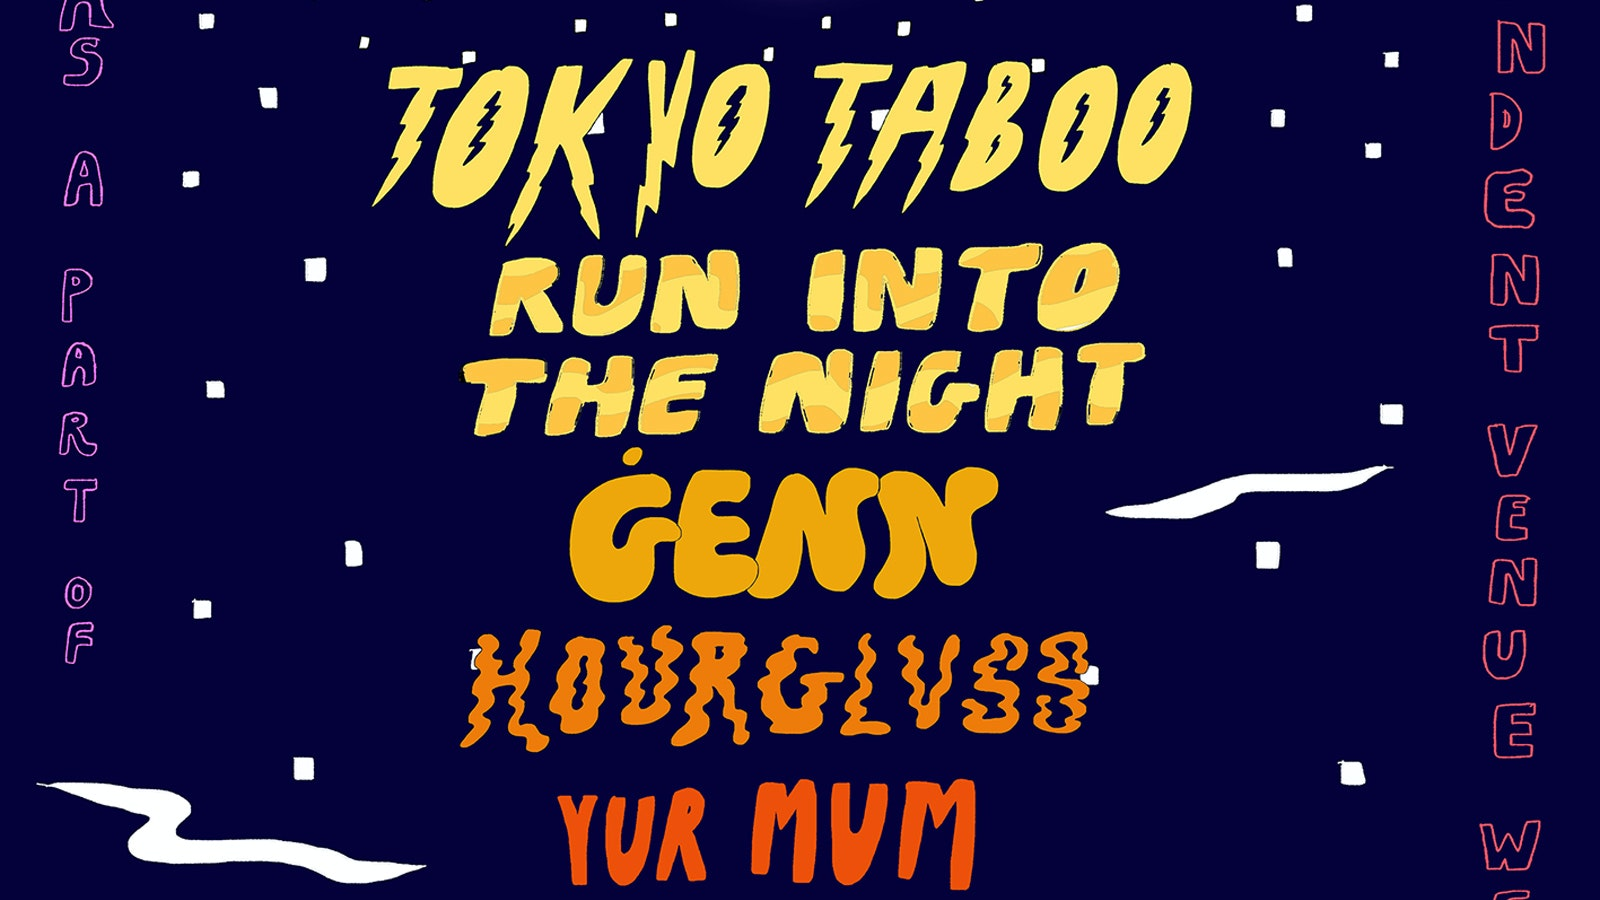 Tokyo Taboo + Ġenn + Run Into The Night + Hourglvss + Yur Mum